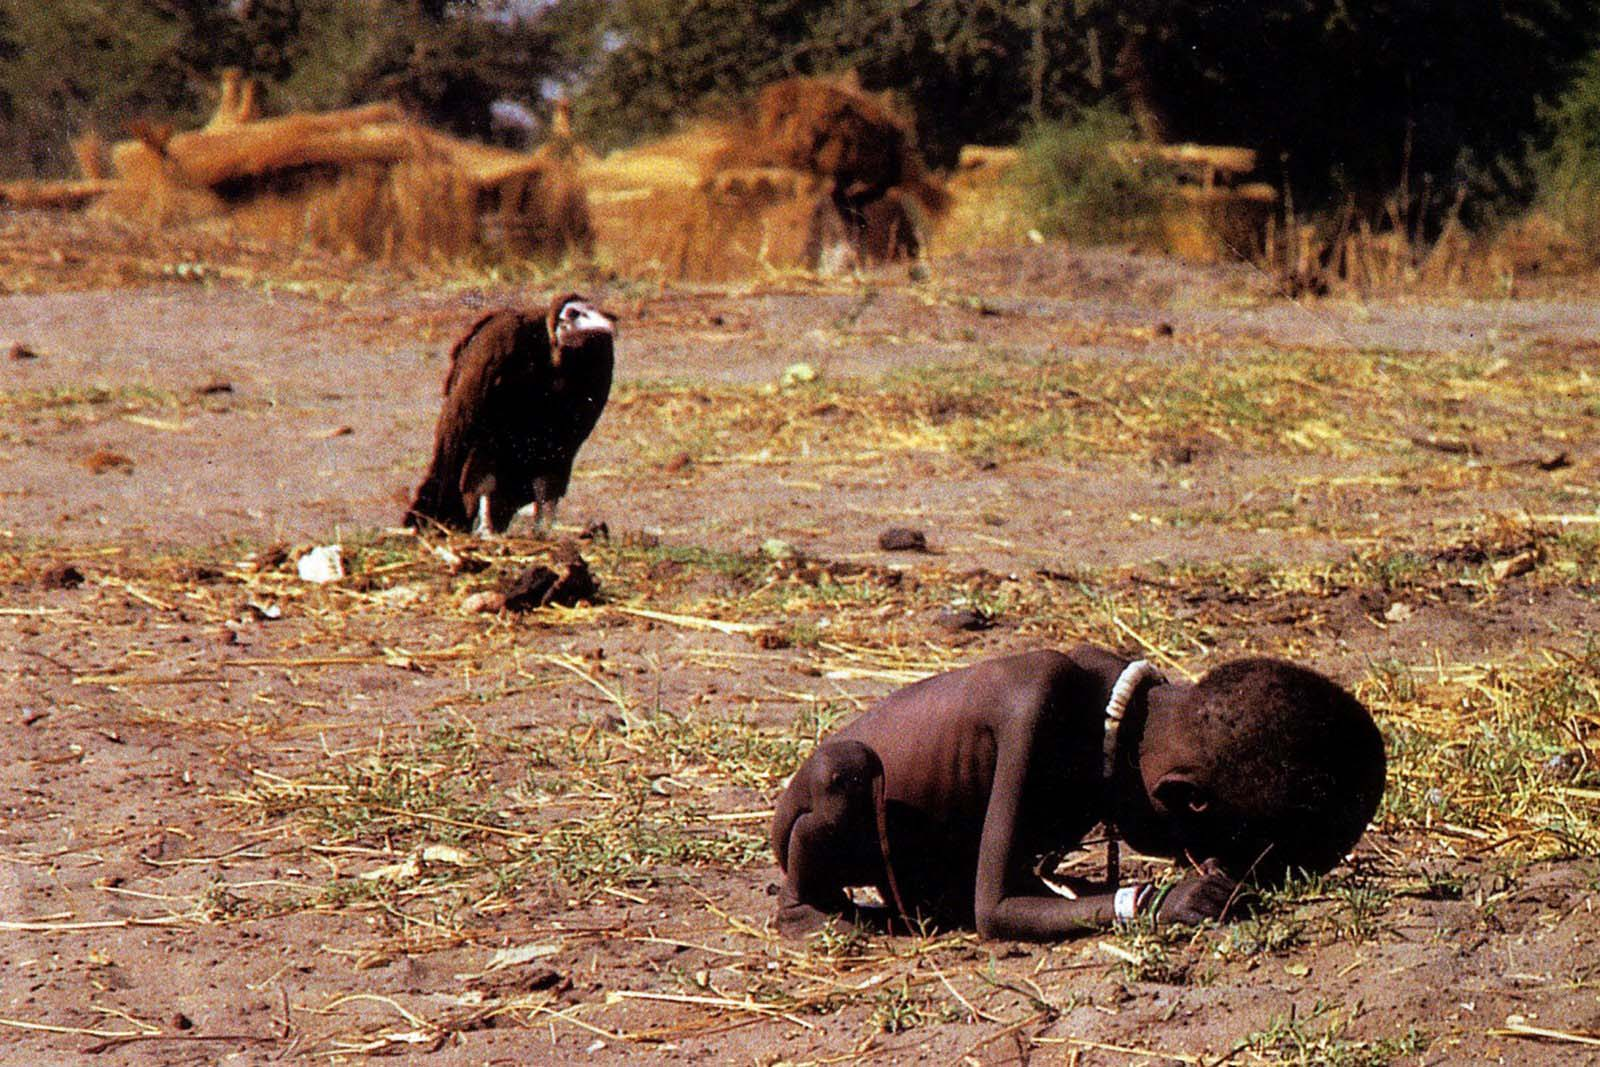 The vulture and the little girl - Kevin Carter, 1993. Tidak Adil? (source: http://rarehistoricalphotos.com/vulture-little-girl/)